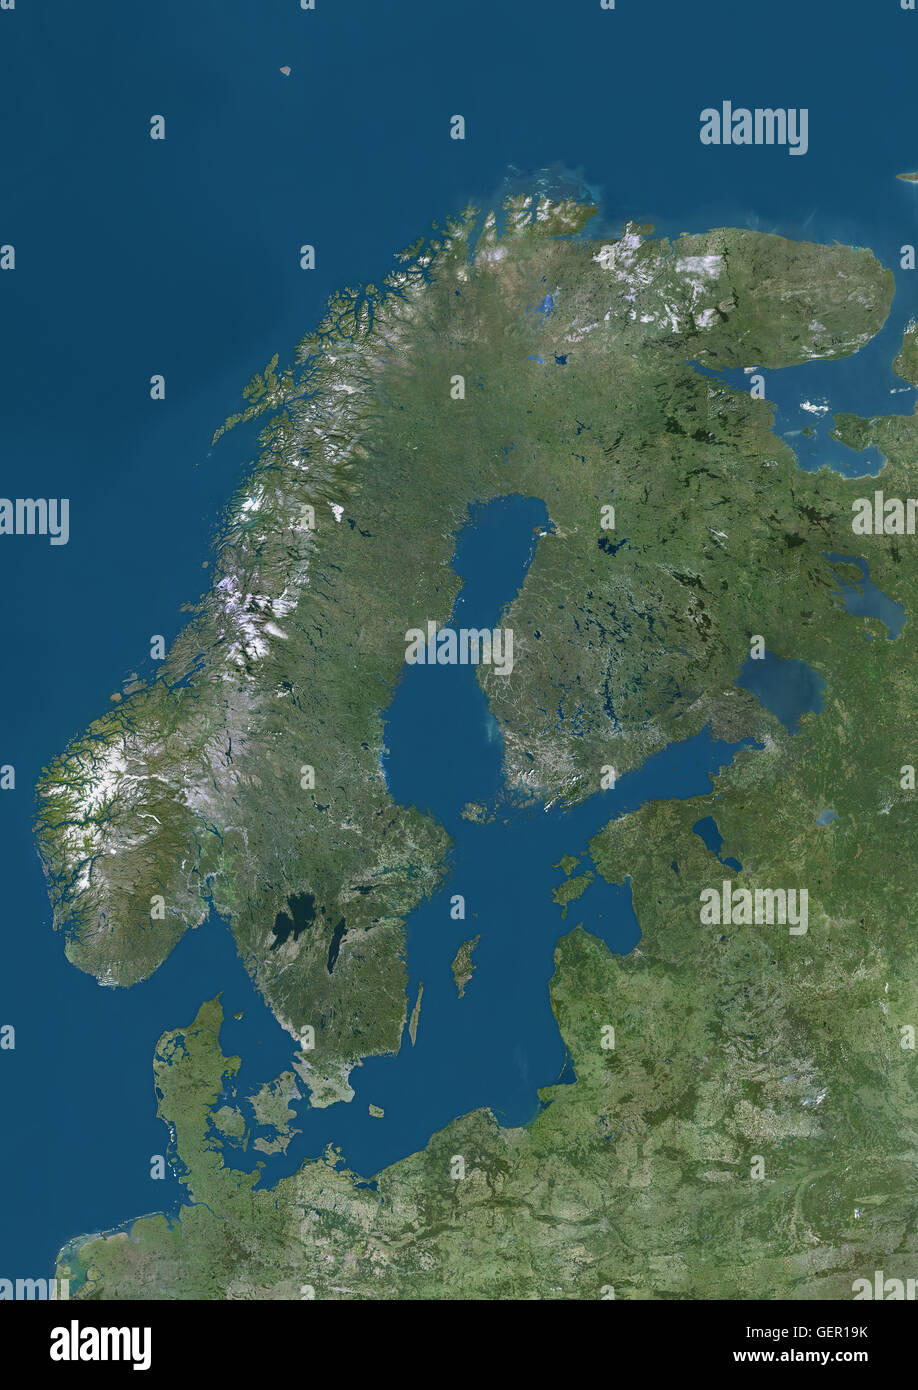 Satellite view of Northern Europe showing Scandinavia and the Baltic States. This image was compiled from data acquired Stock Photo